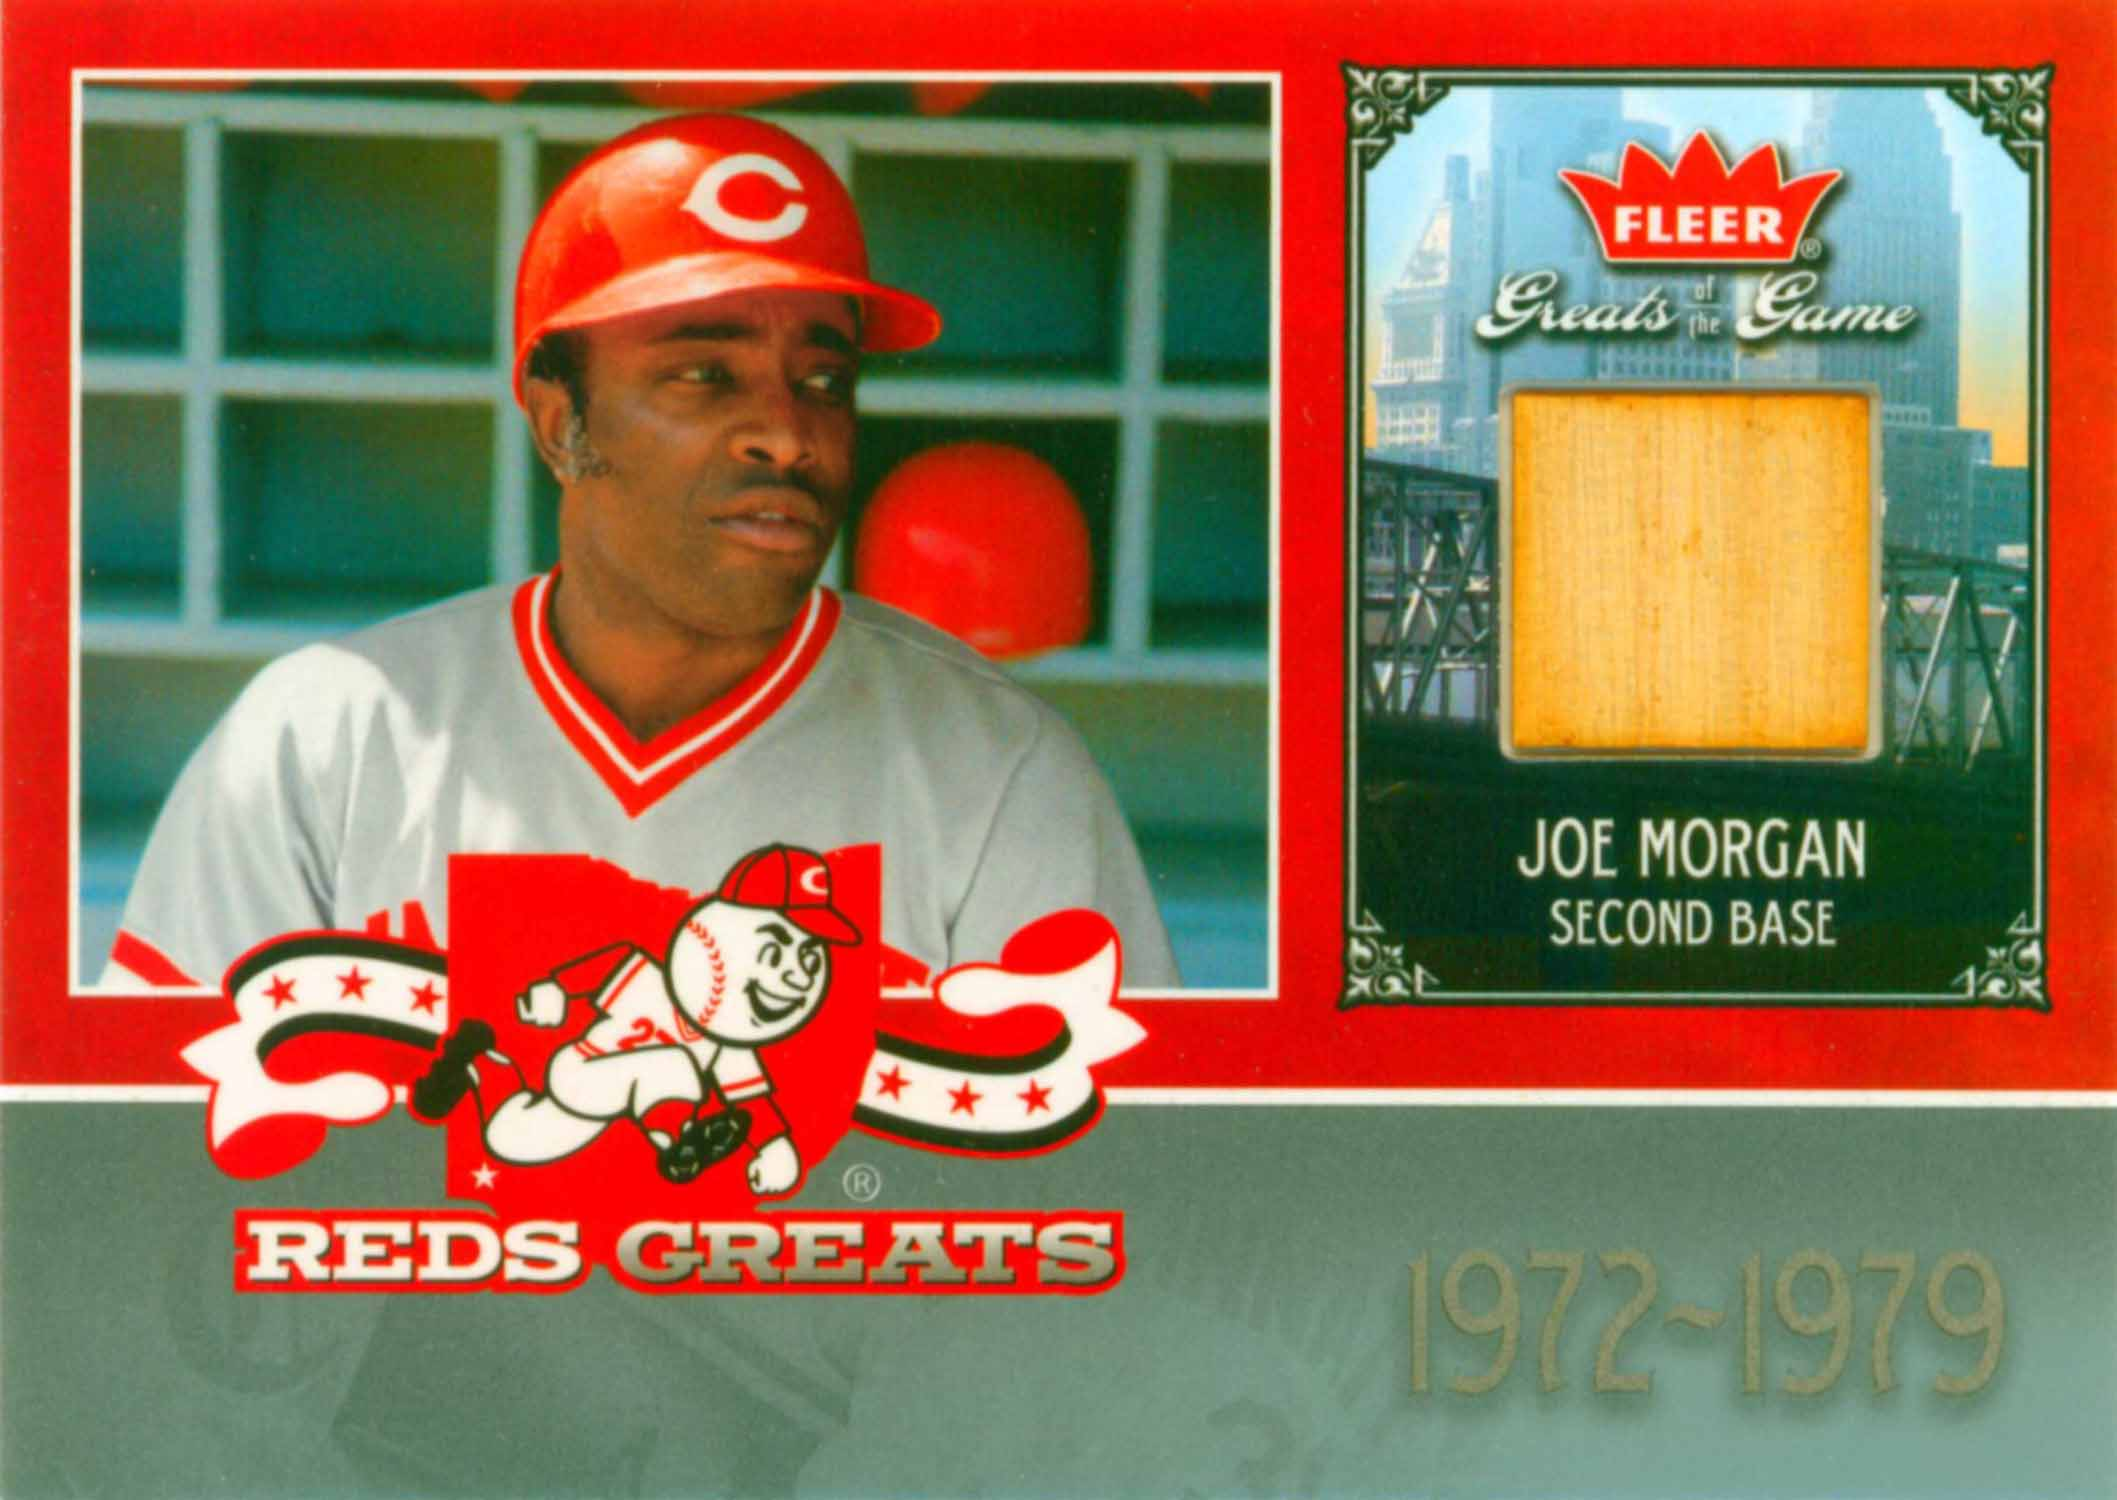 2006 Greats of the Game Reds Greats Memorabilia Bat